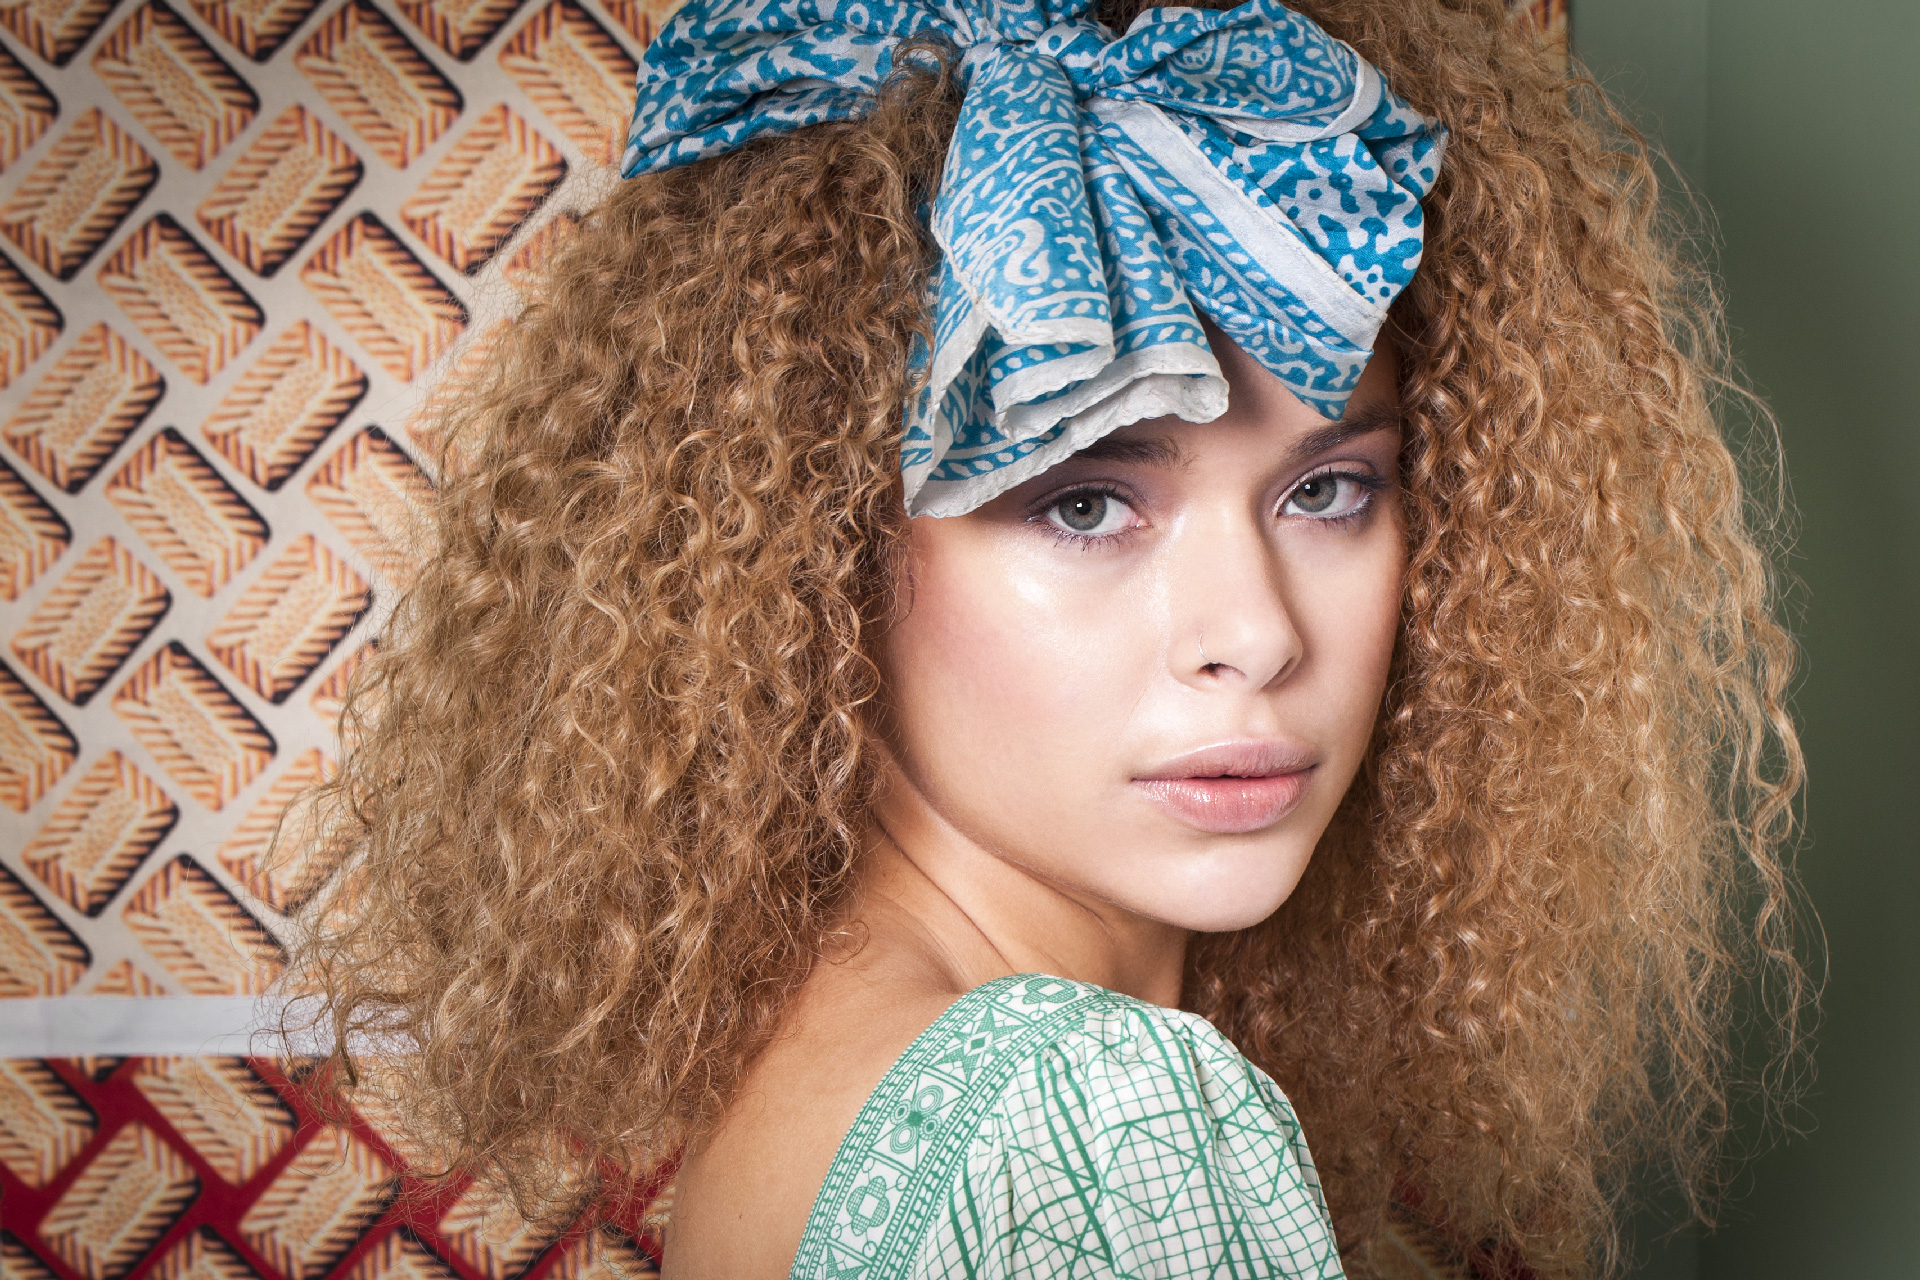 Photo: beauty and cosmetics campaign photographer London, Margaret Yescombe. Agency Model, natural look make-up, curly hair, ribbon, patterns, fashion, colourful, electric, ethic, beautiful, stunning, imagery